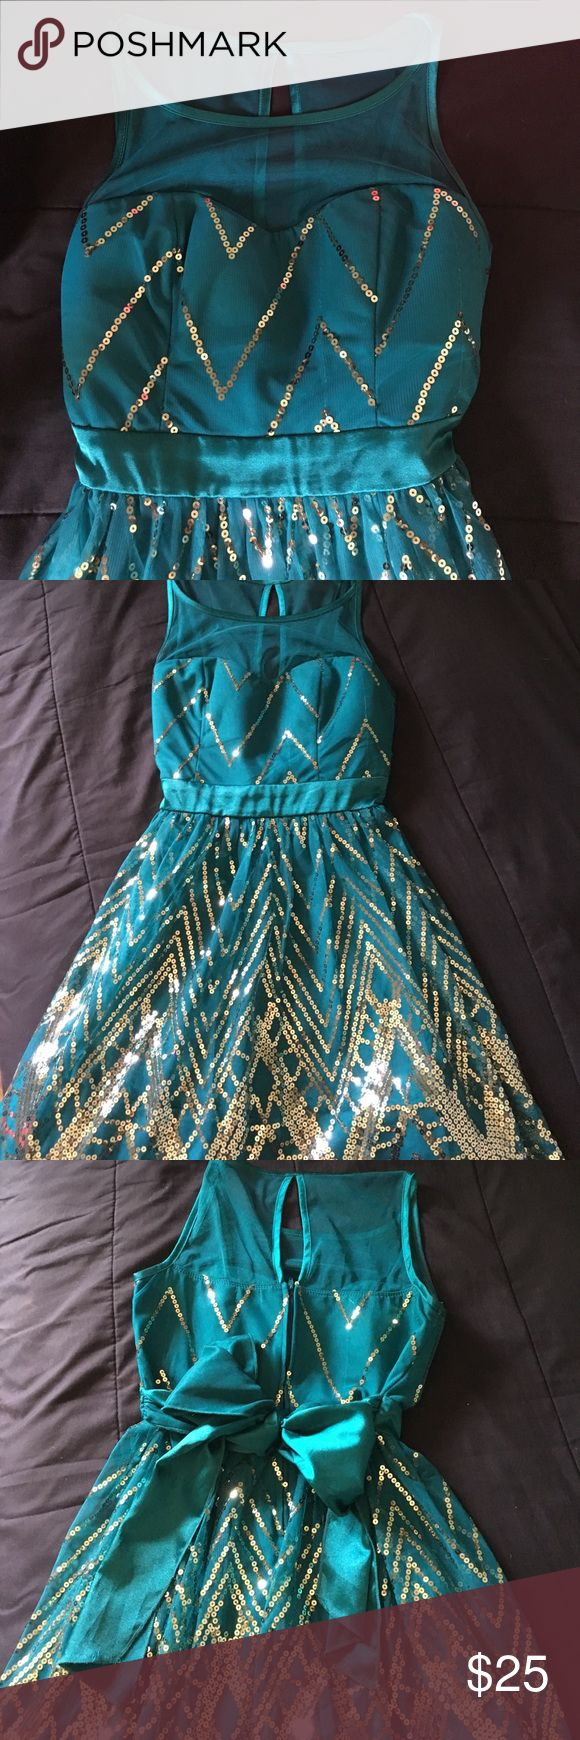 Formal dress Teal dress with gold sequences geometrically stitched.   This dress was worn a couple of times for cruise dinners and graduations. Ruby Rox Dresses Mini